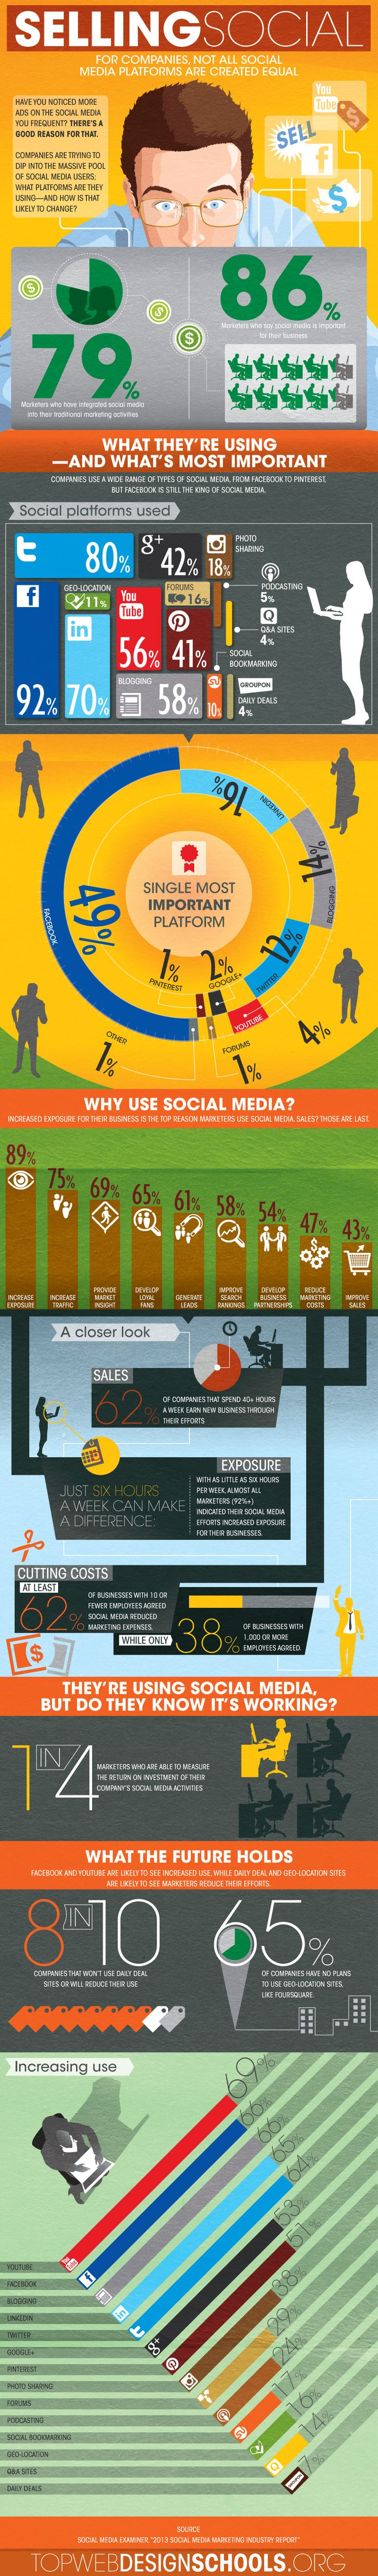 How businesses use social media (Infographic)